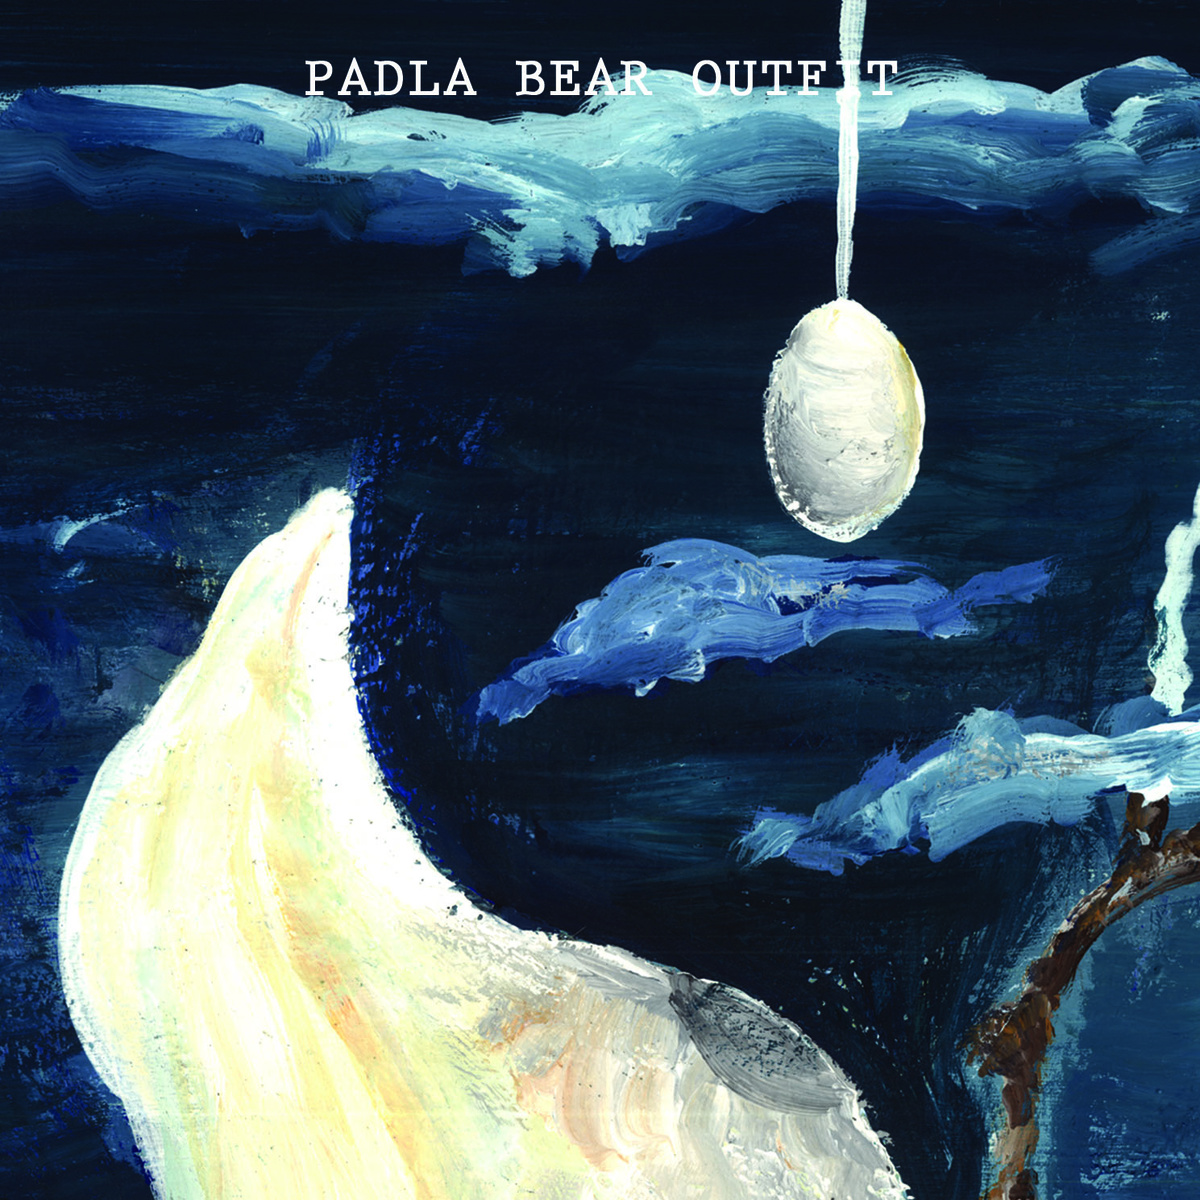 Padla Bear Outfit - Sunday Morning Tapes